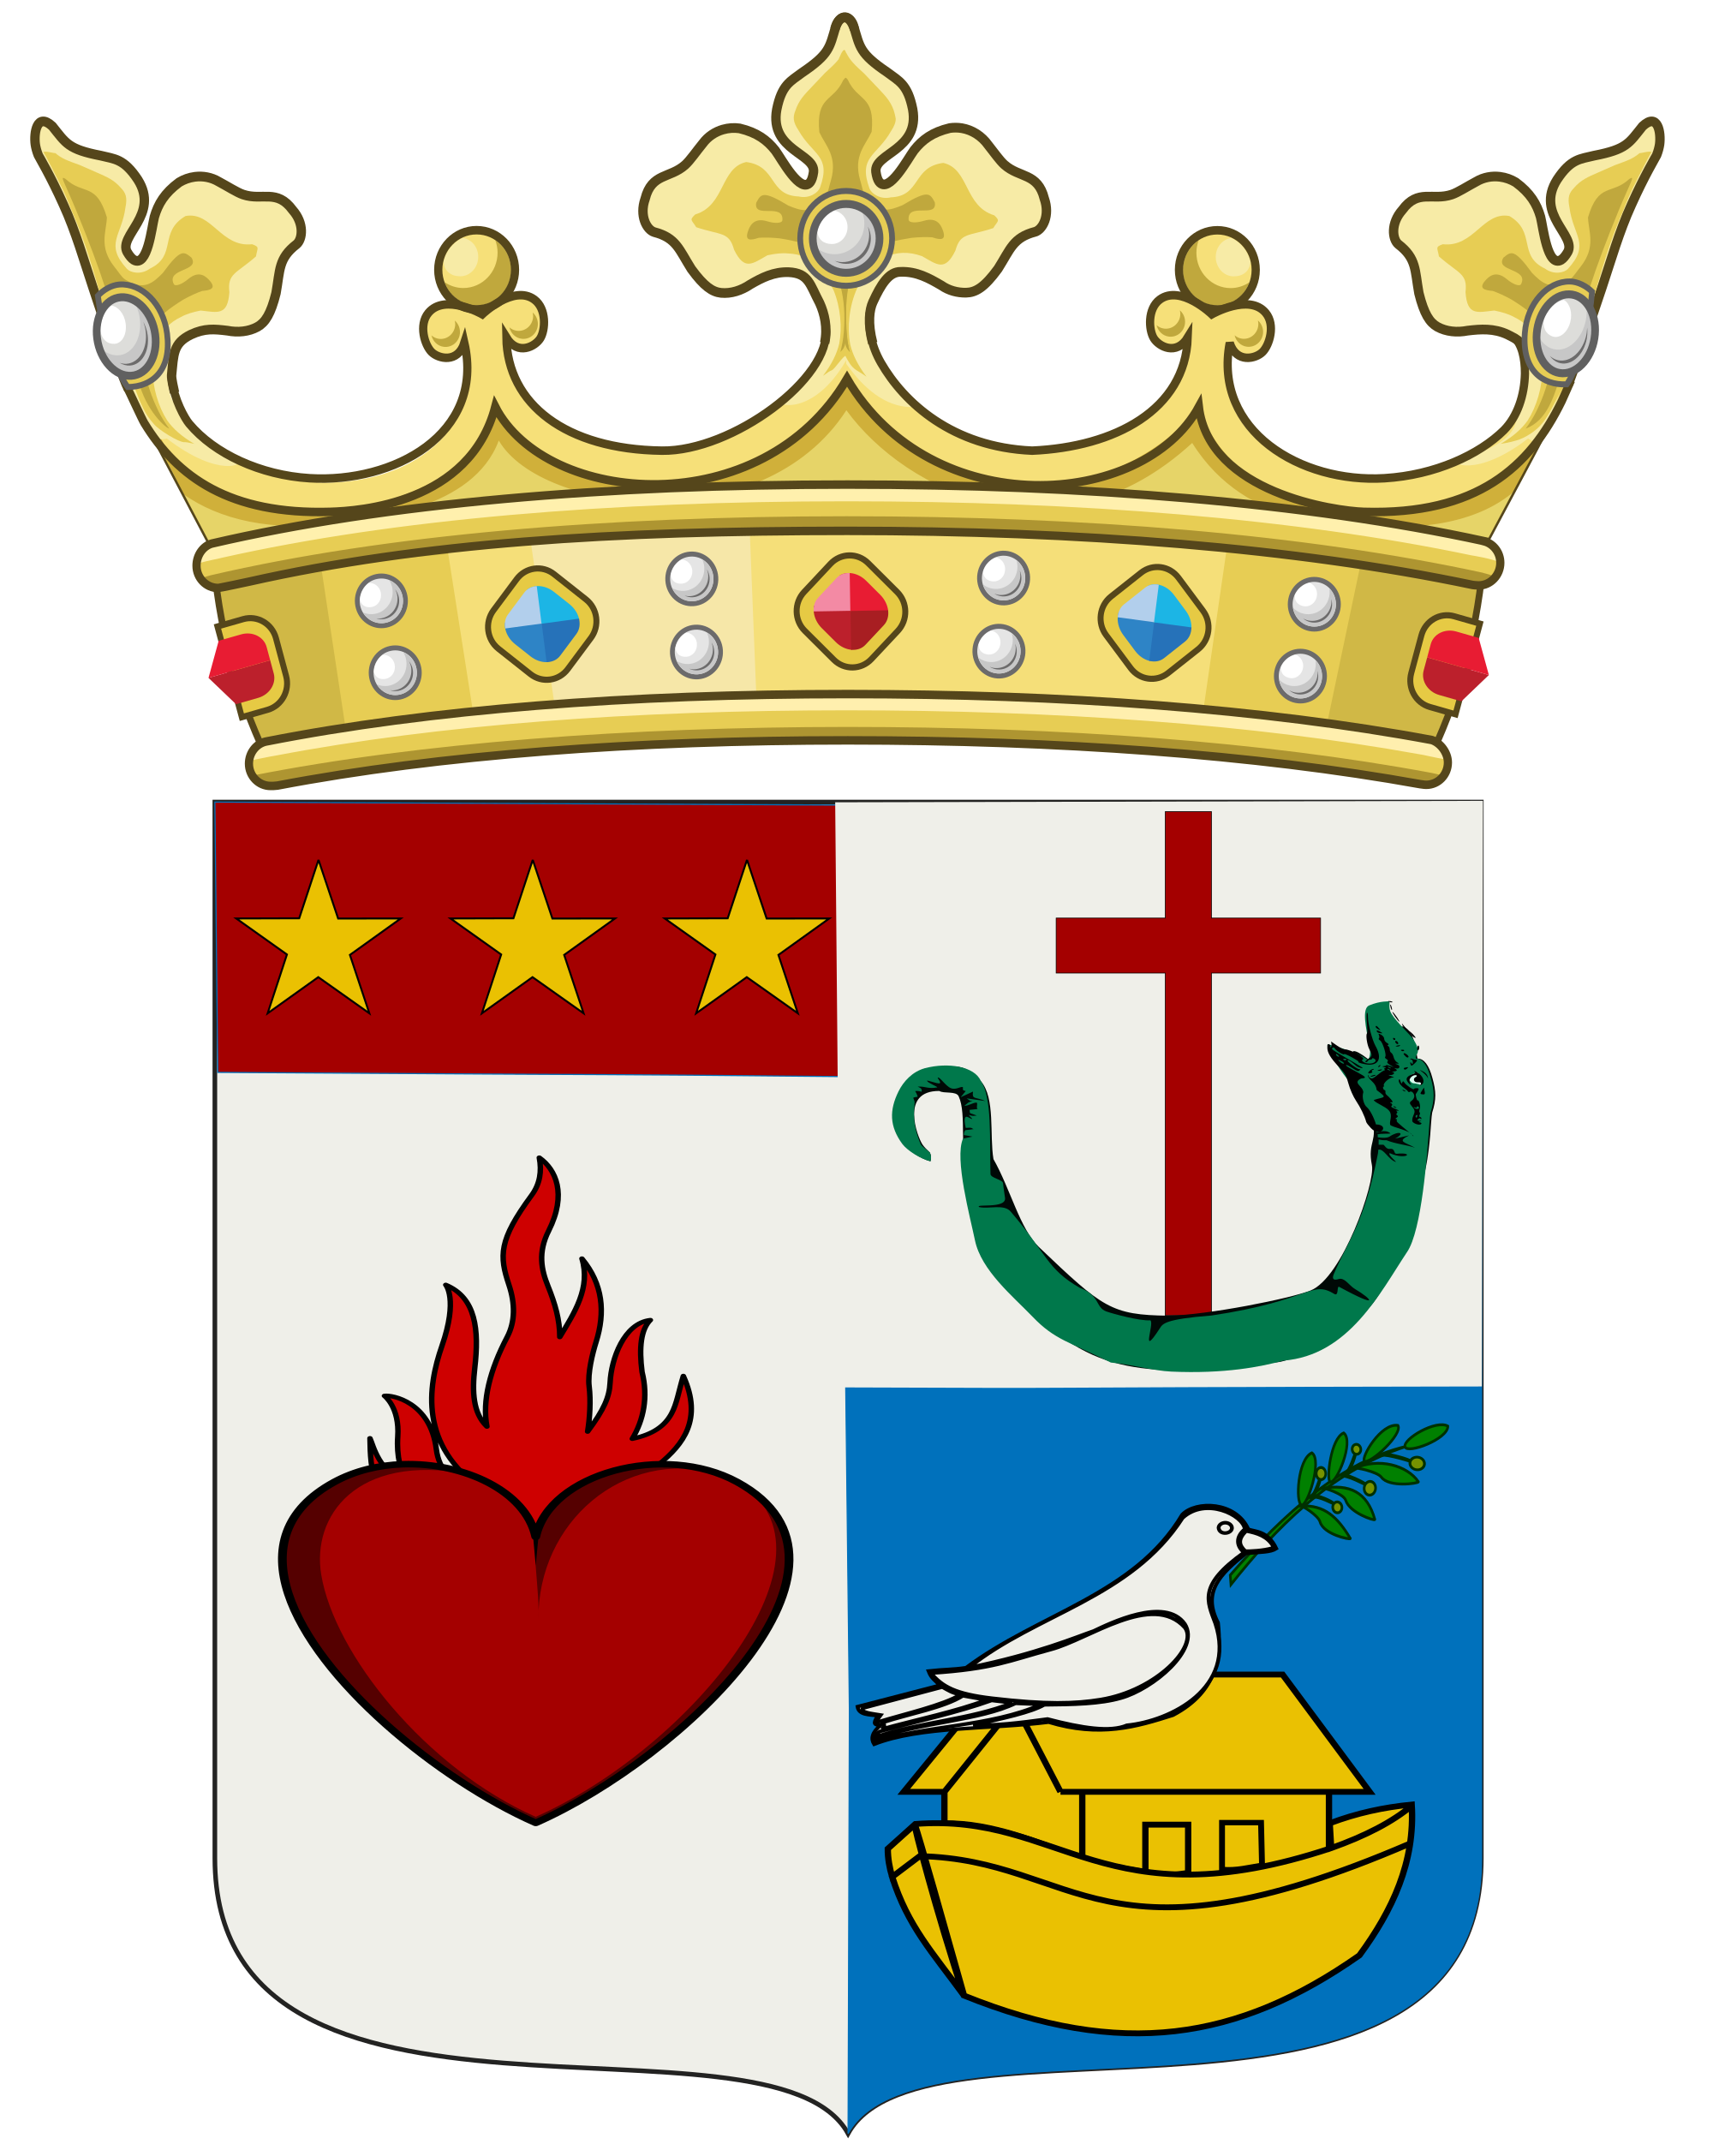 Crown crest clipart png image free stock File:Filitti family coat of arms.svg - Wikimedia Commons image free stock